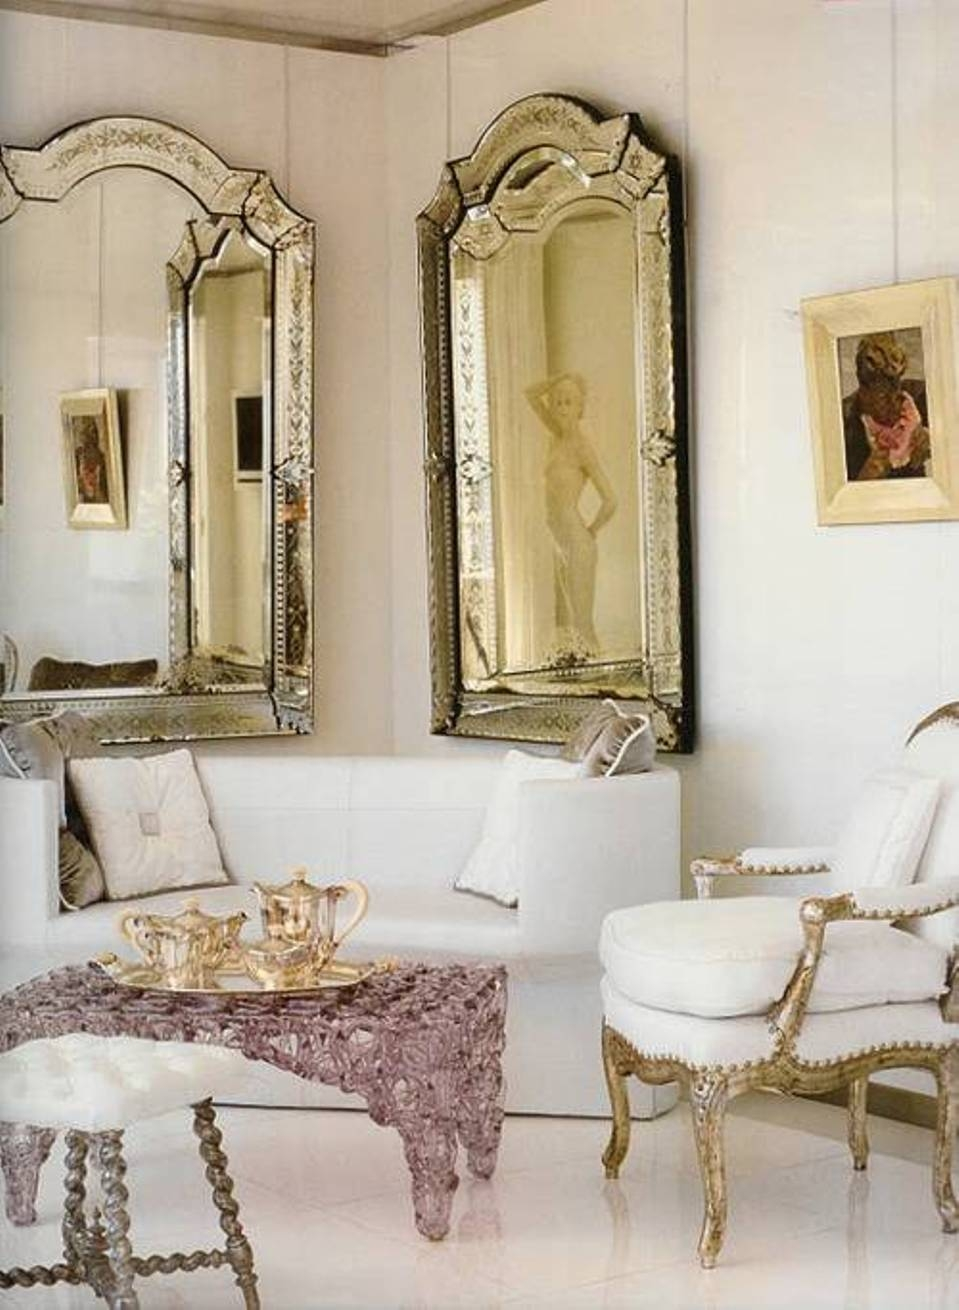 Antique Decorative Wall Mirrors Imposing Design Antique Wall For Long Decorative Mirror (Image 1 of 15)